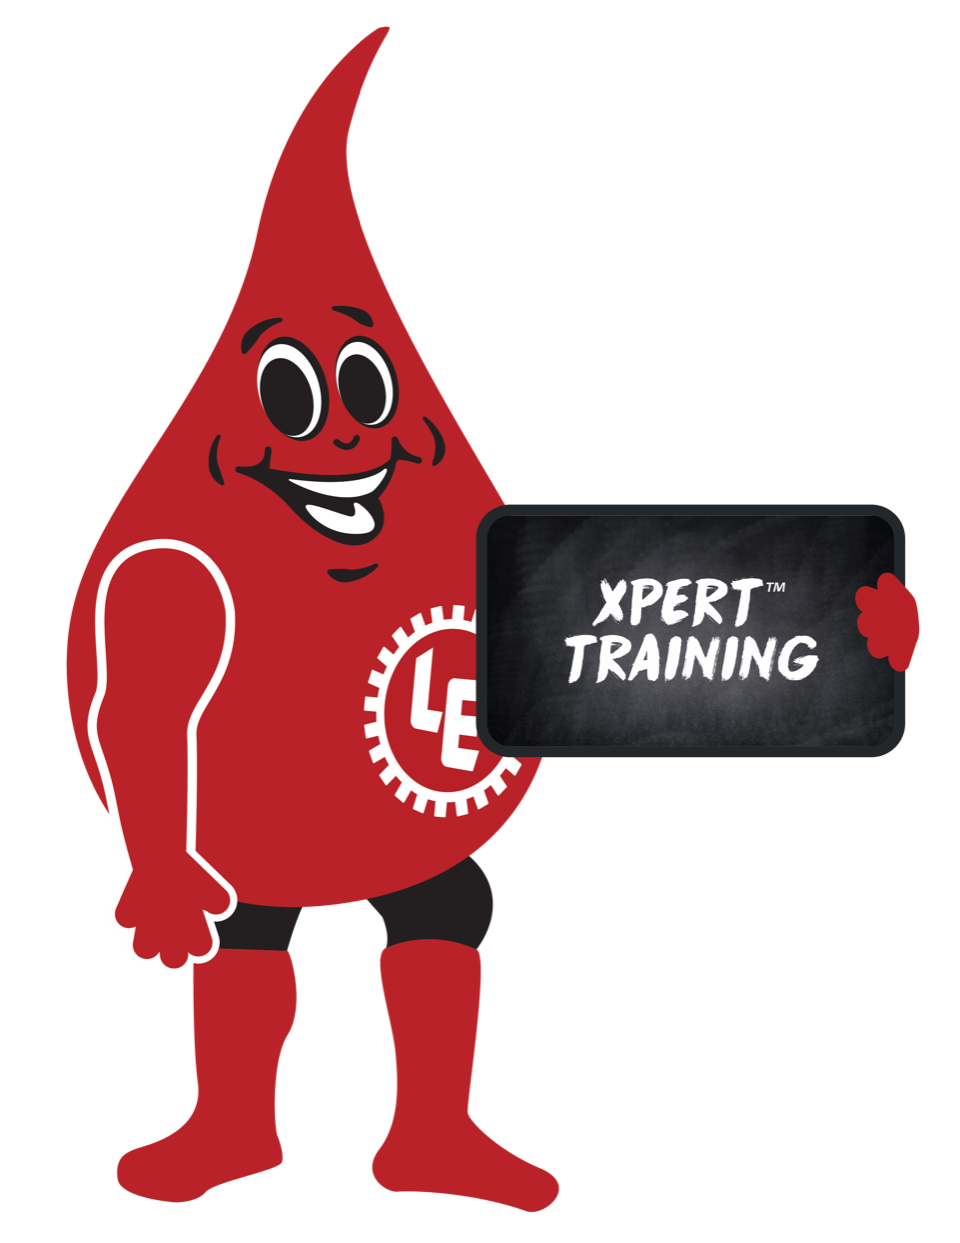 http://campaign-image.com/zohocampaigns/283804000001534004_zc_v15_lubeman_with_xpert_training_chalkboard.png